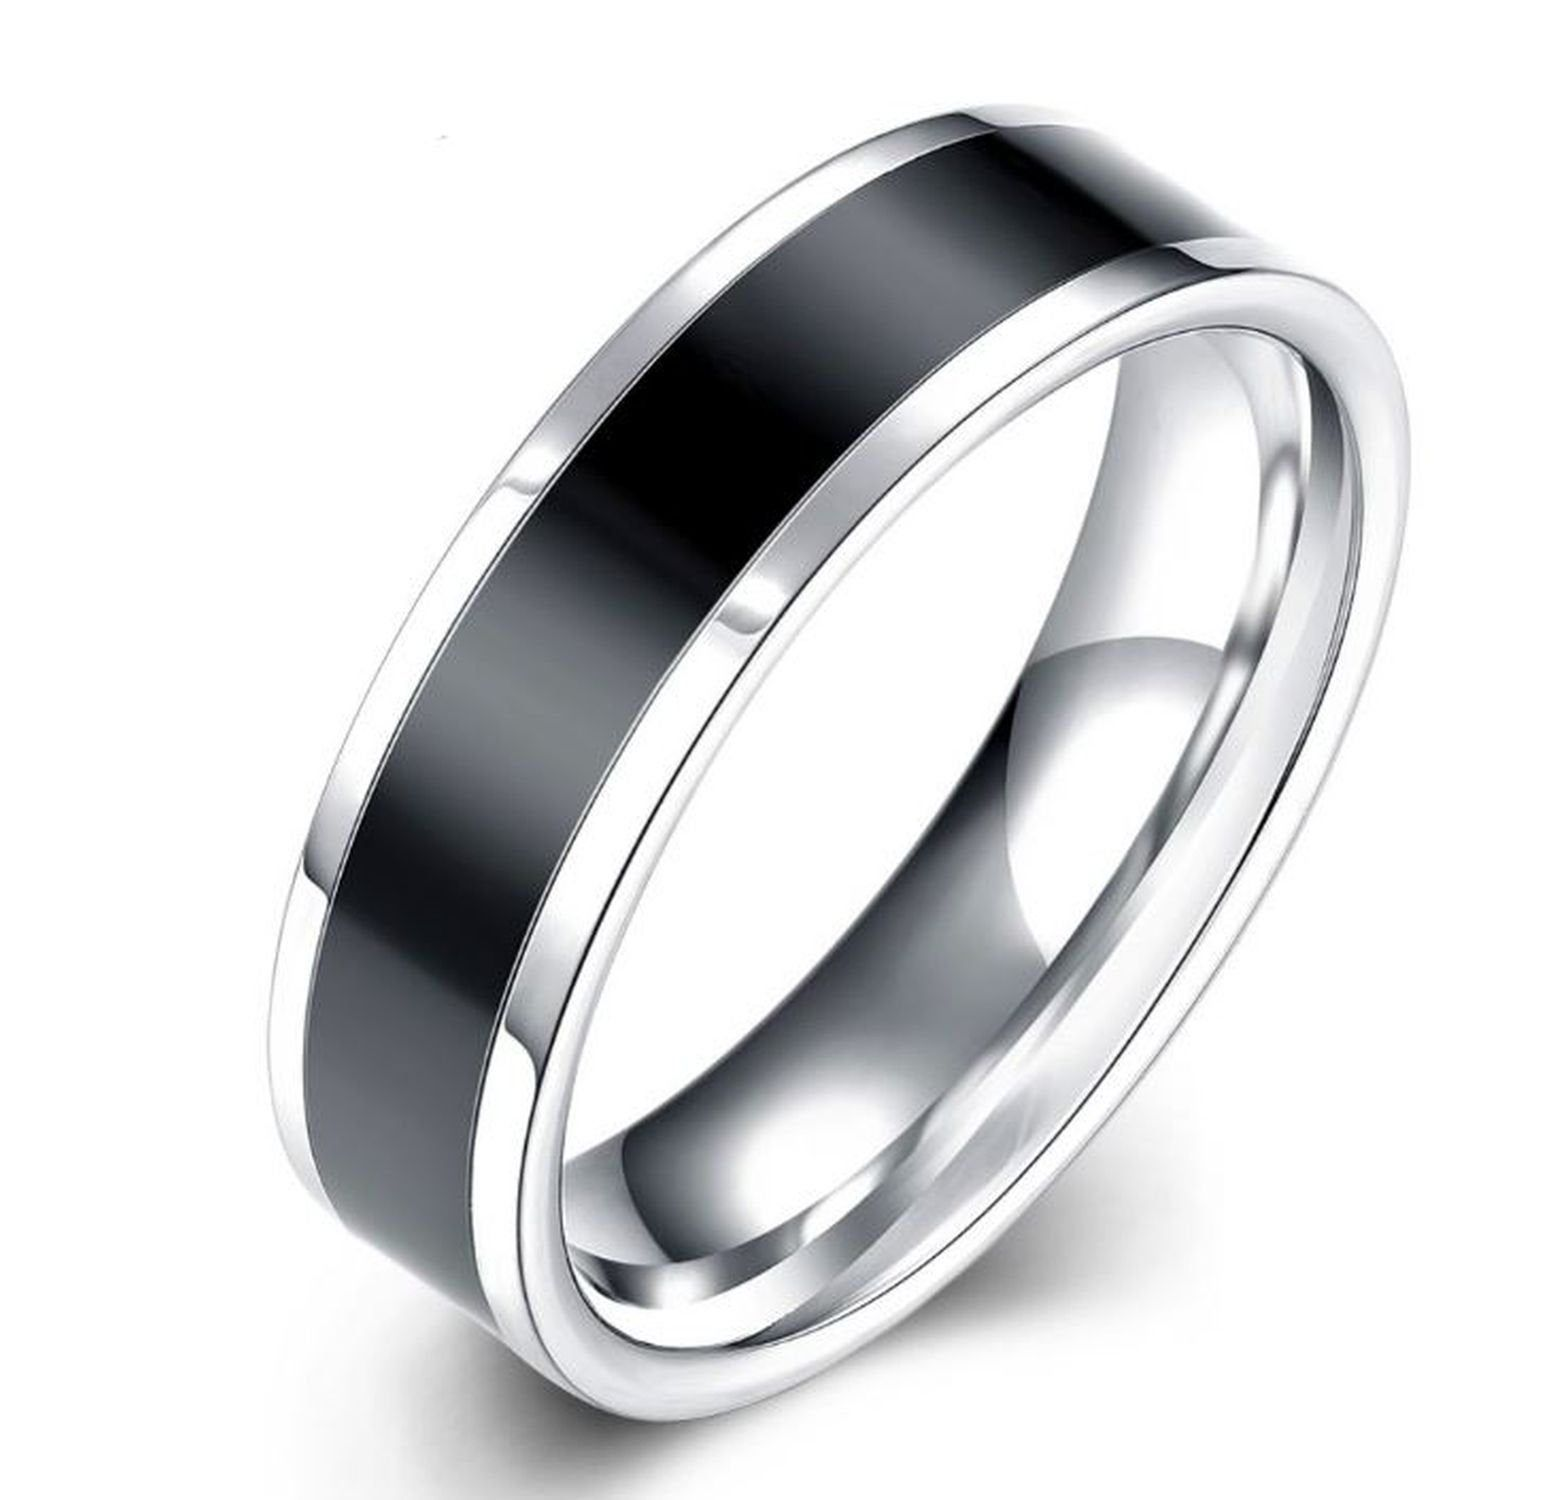 Mens Titanium Band with Black Stripe two tone in sizes 7